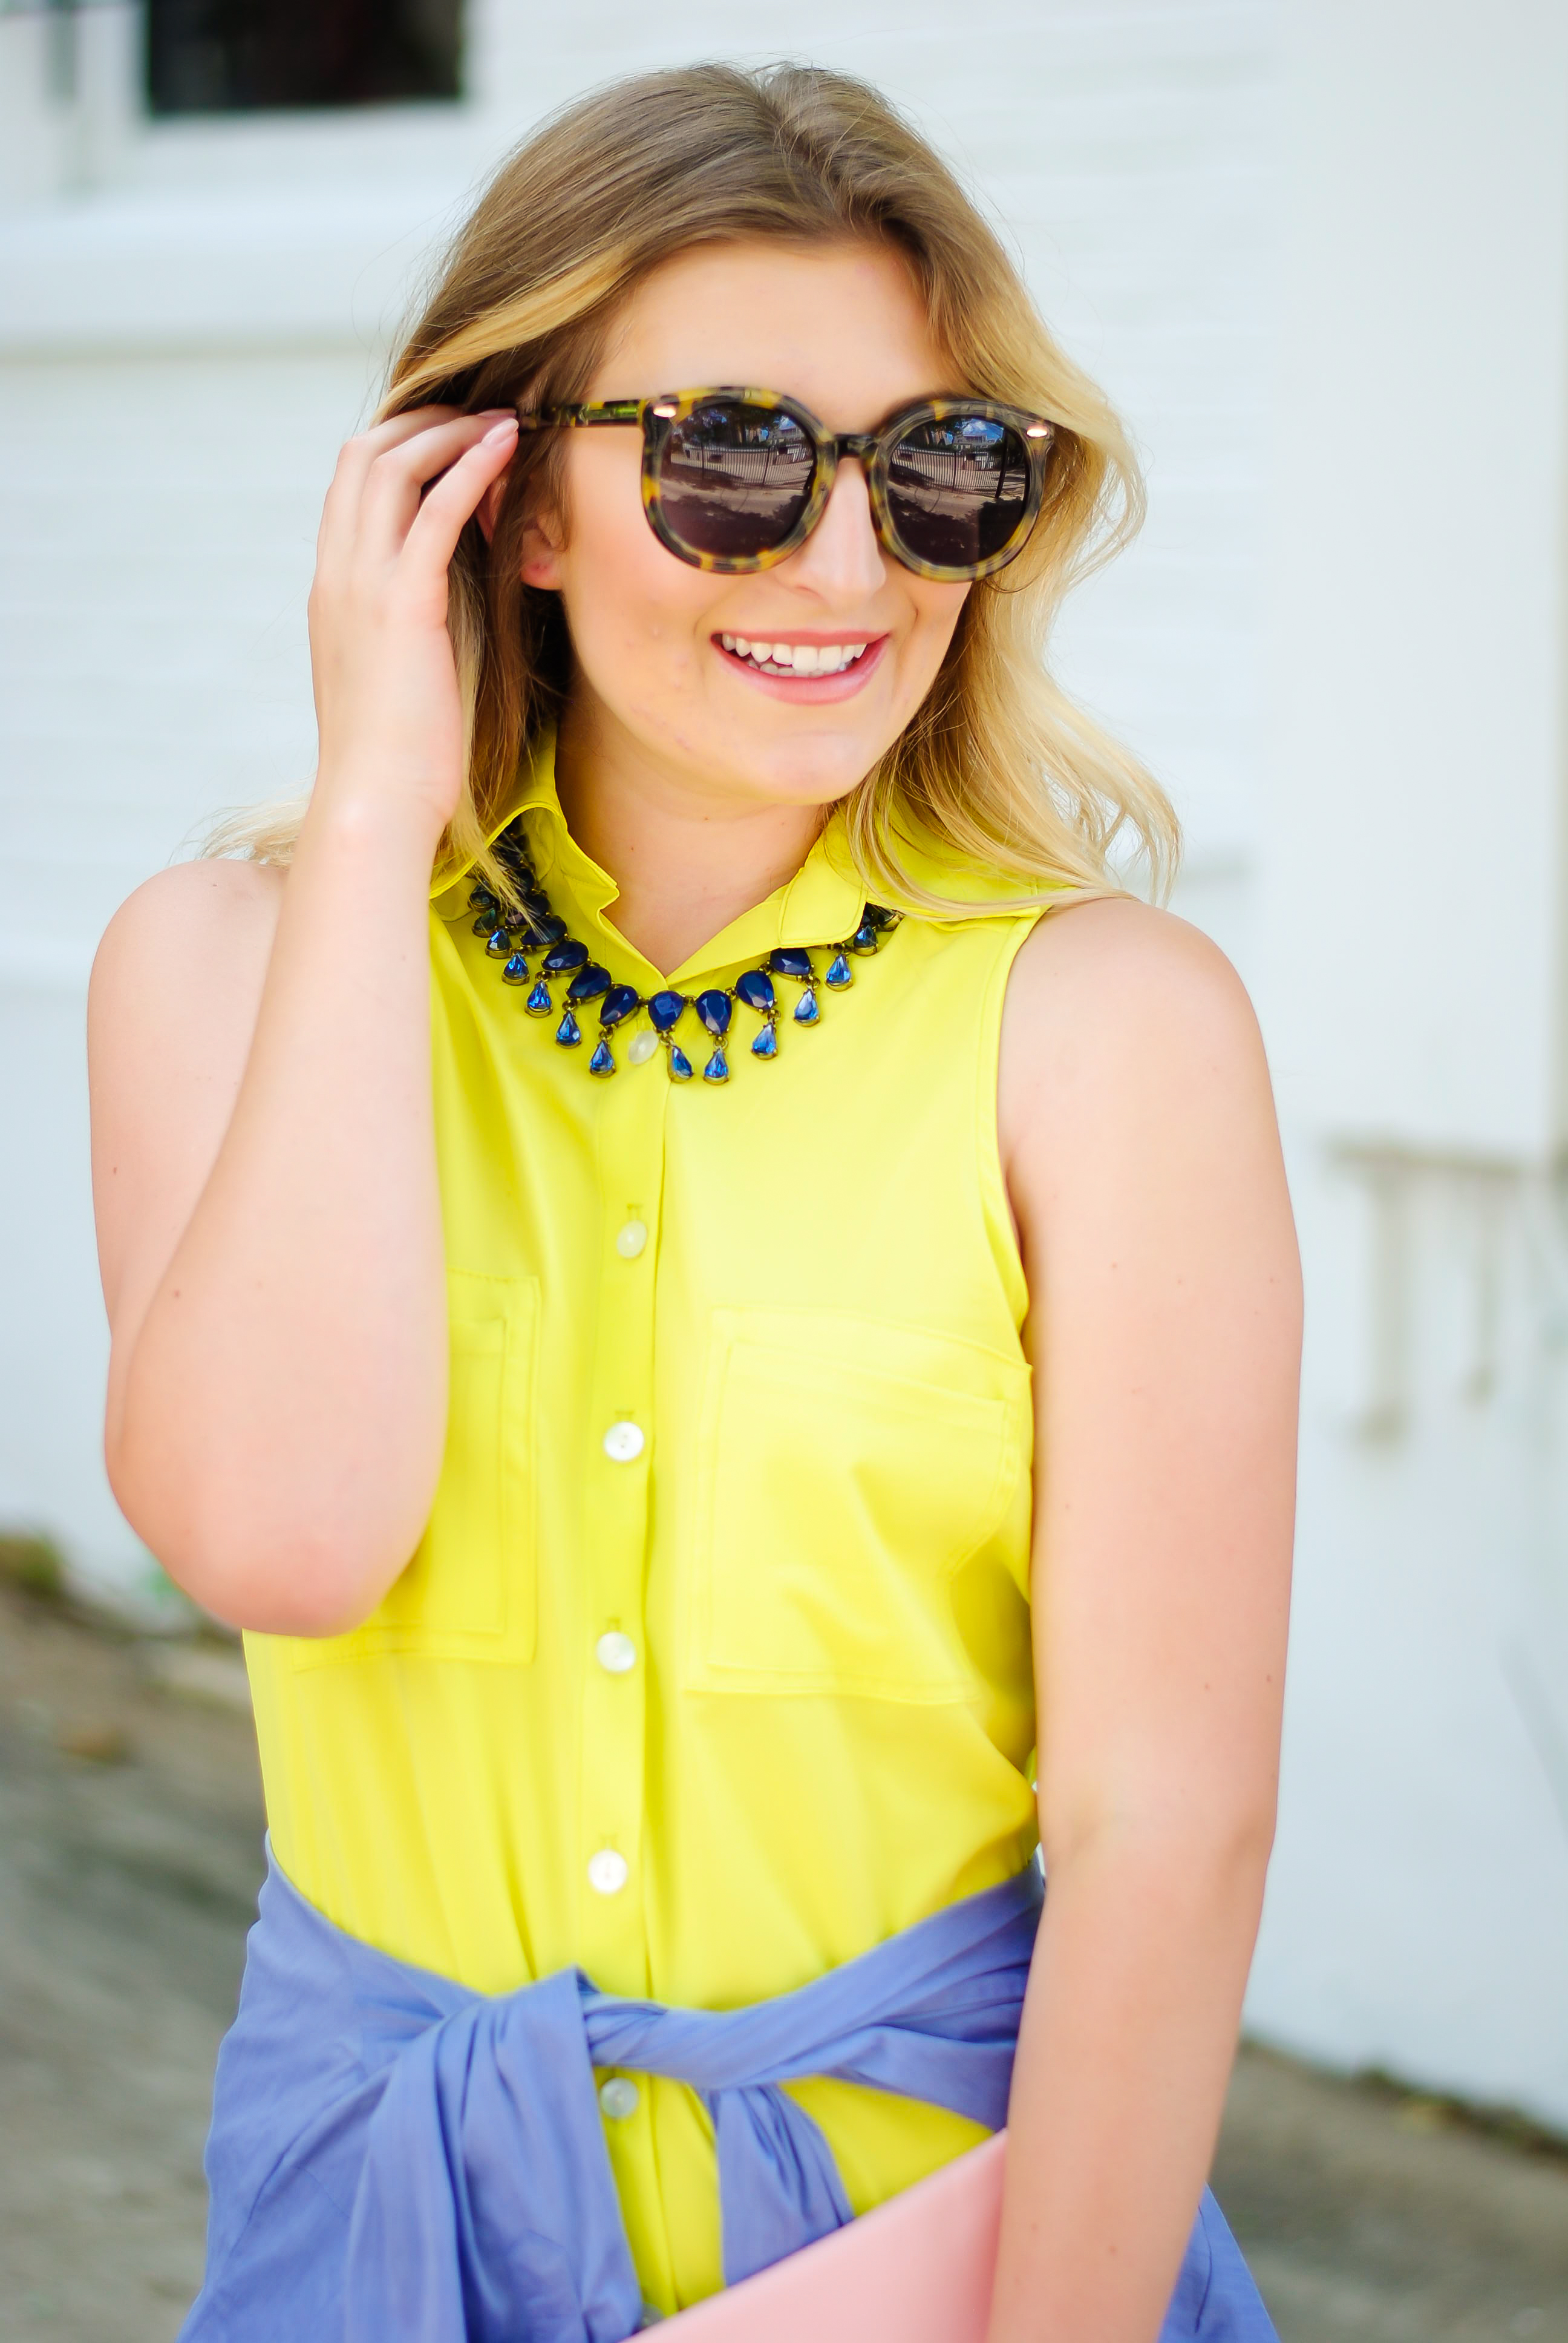 business casual wear | Audrey Madison Stowe Blog